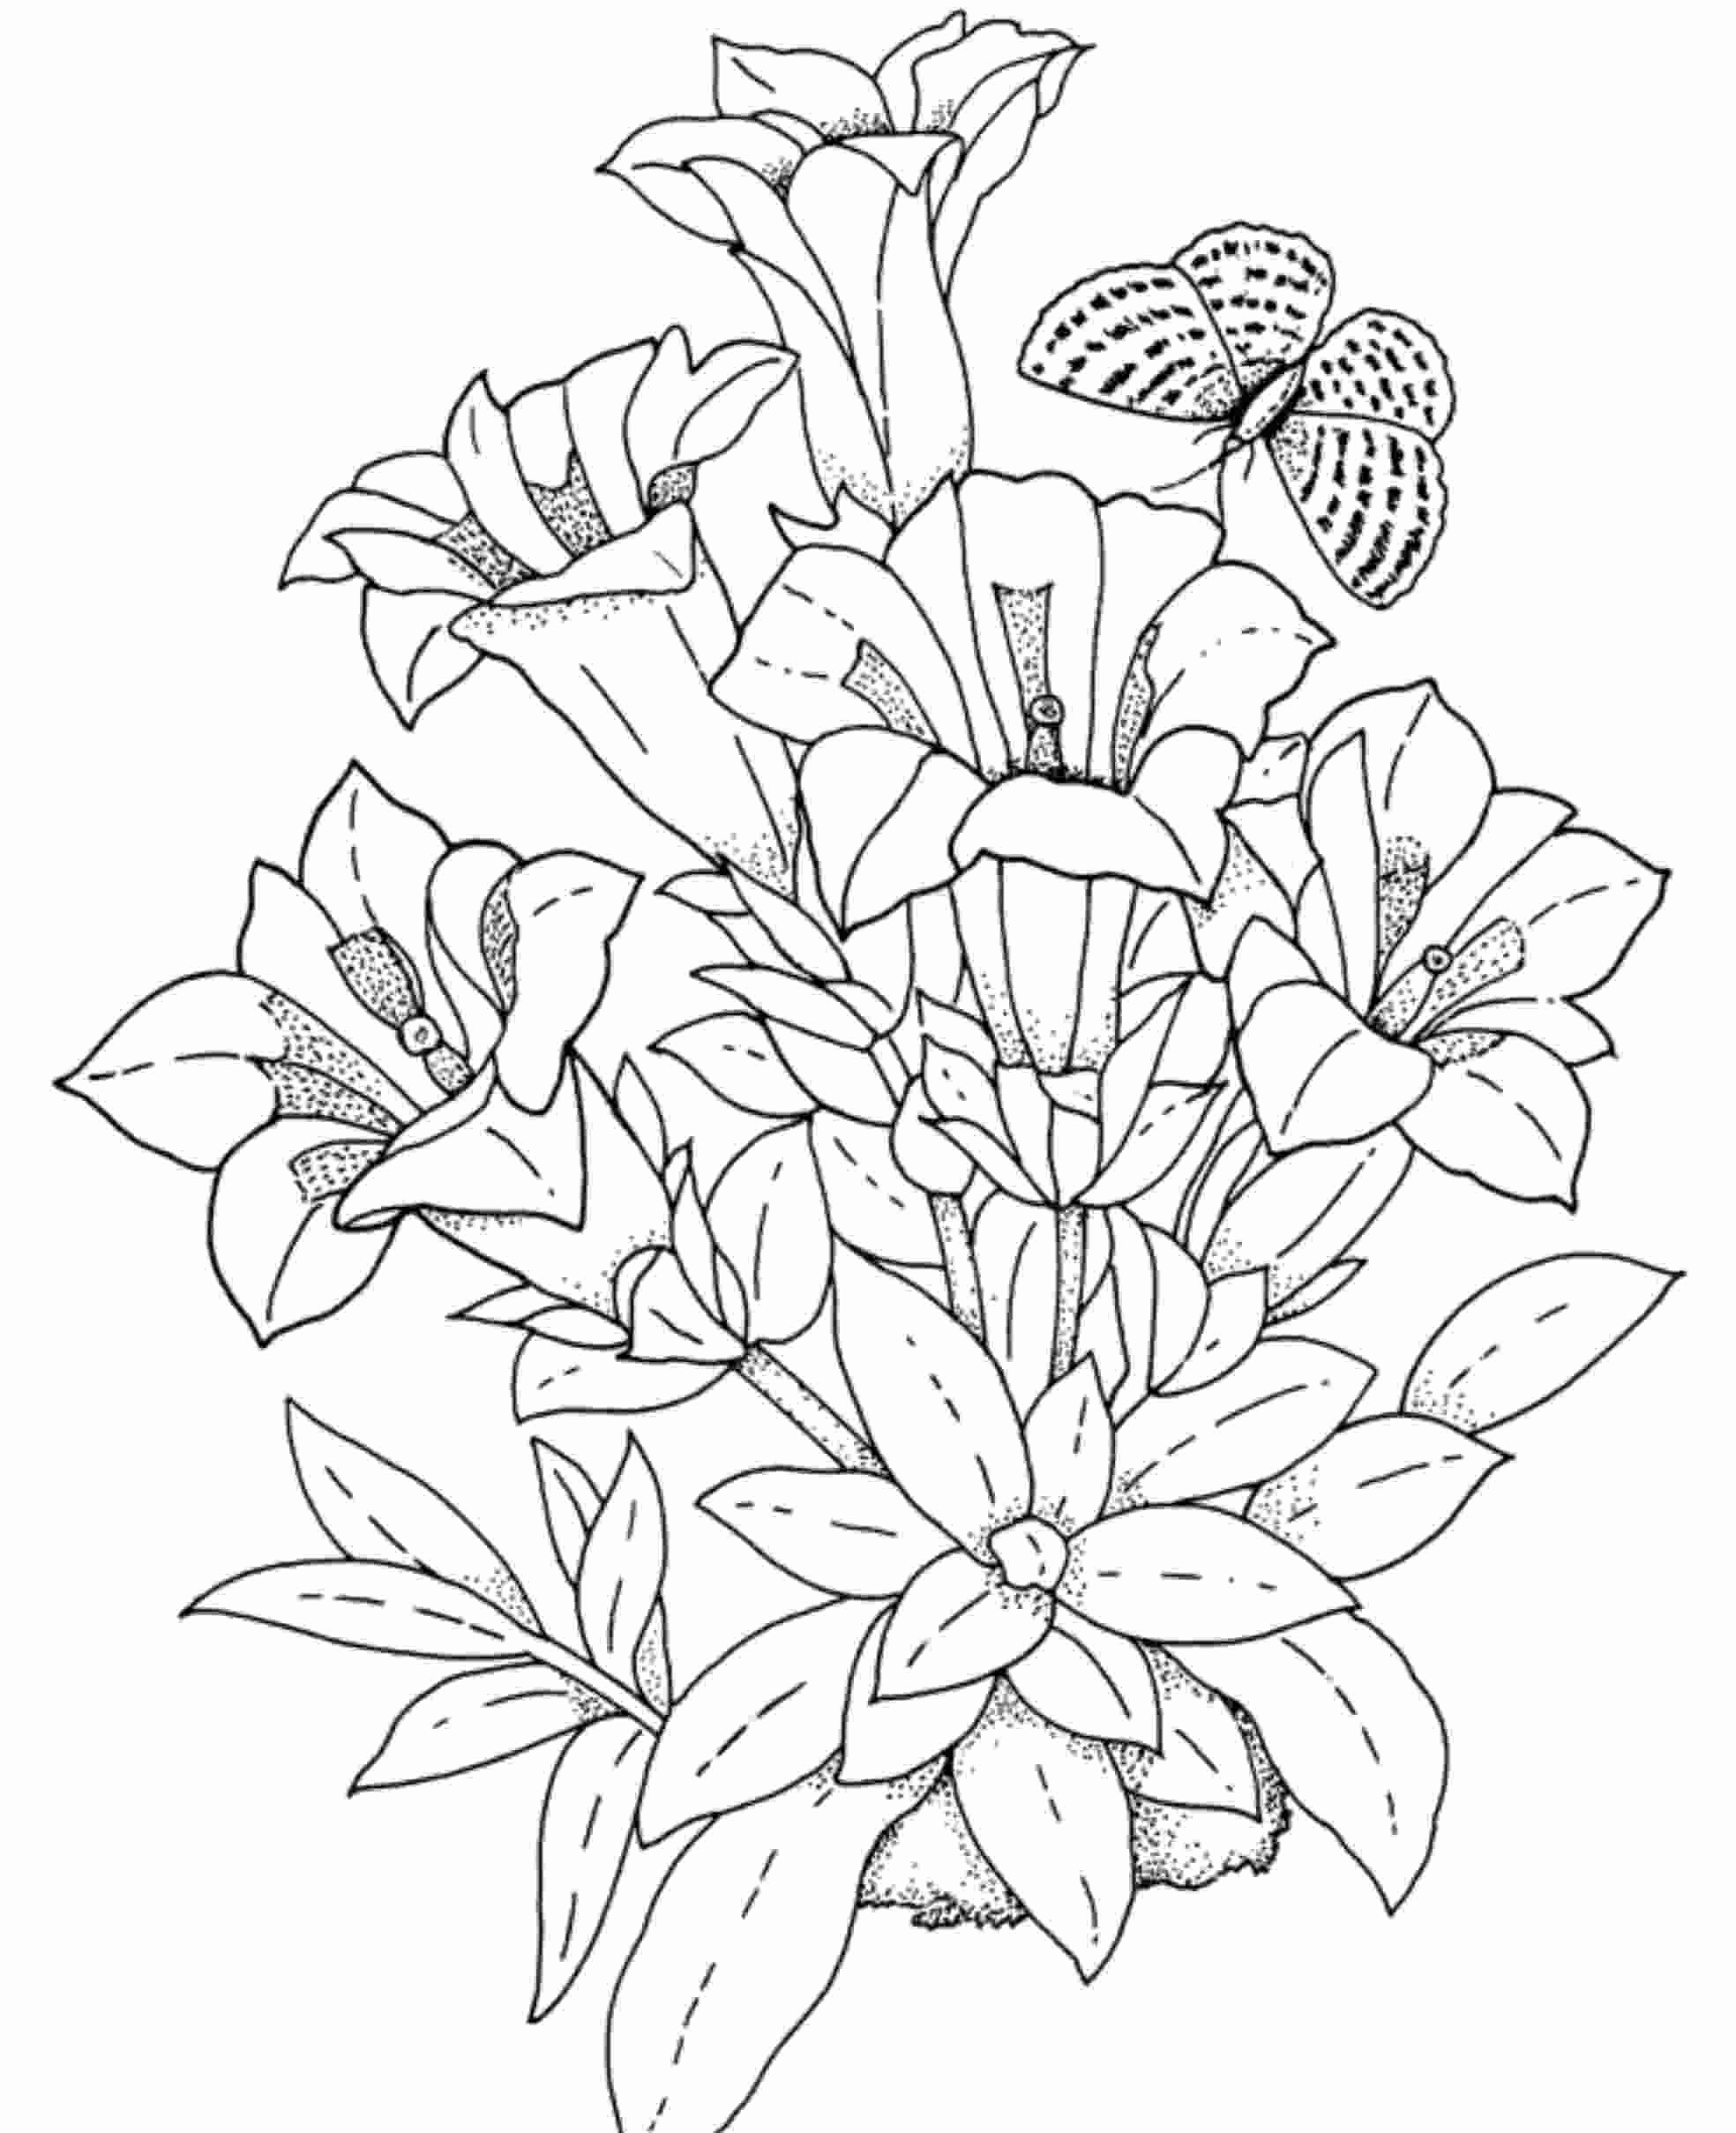 Spring Flower Coloring Pages For Kids Free Printable Sunflower Coloring Pages Printable Flower Coloring Pages Butterfly Coloring Page